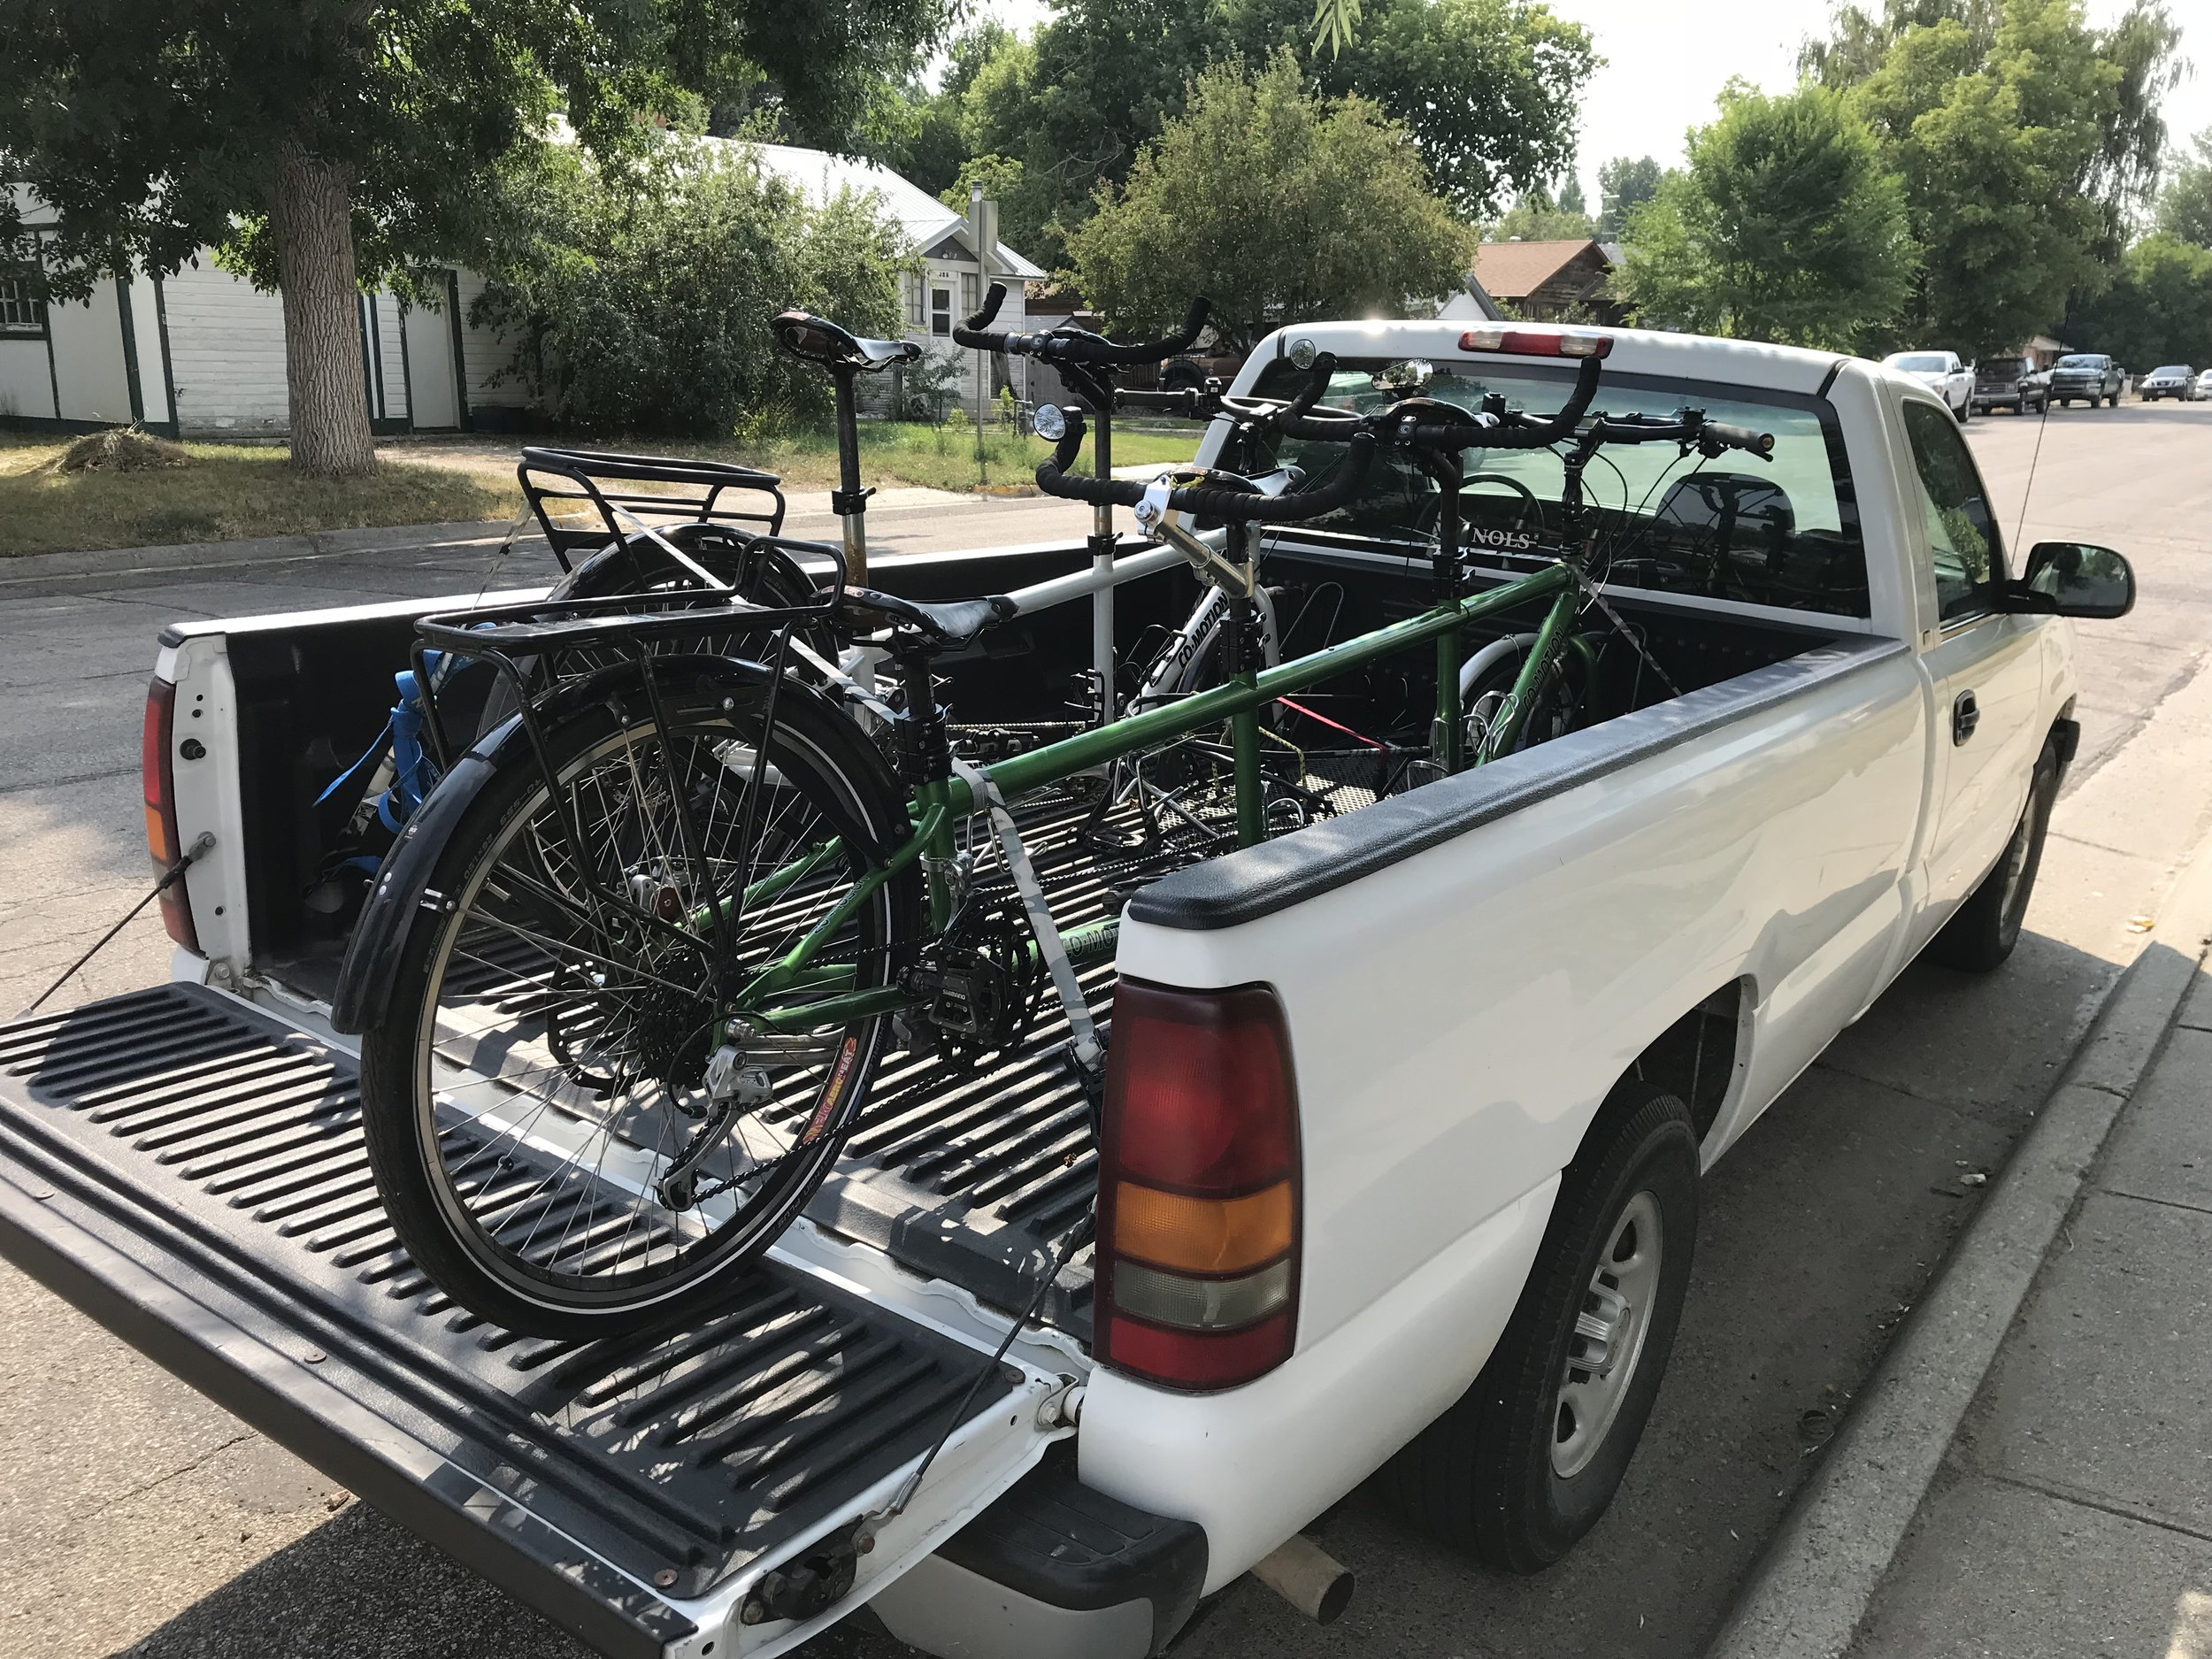 These are the bikes on the pick-up truck we borrowed in Lander, WY.